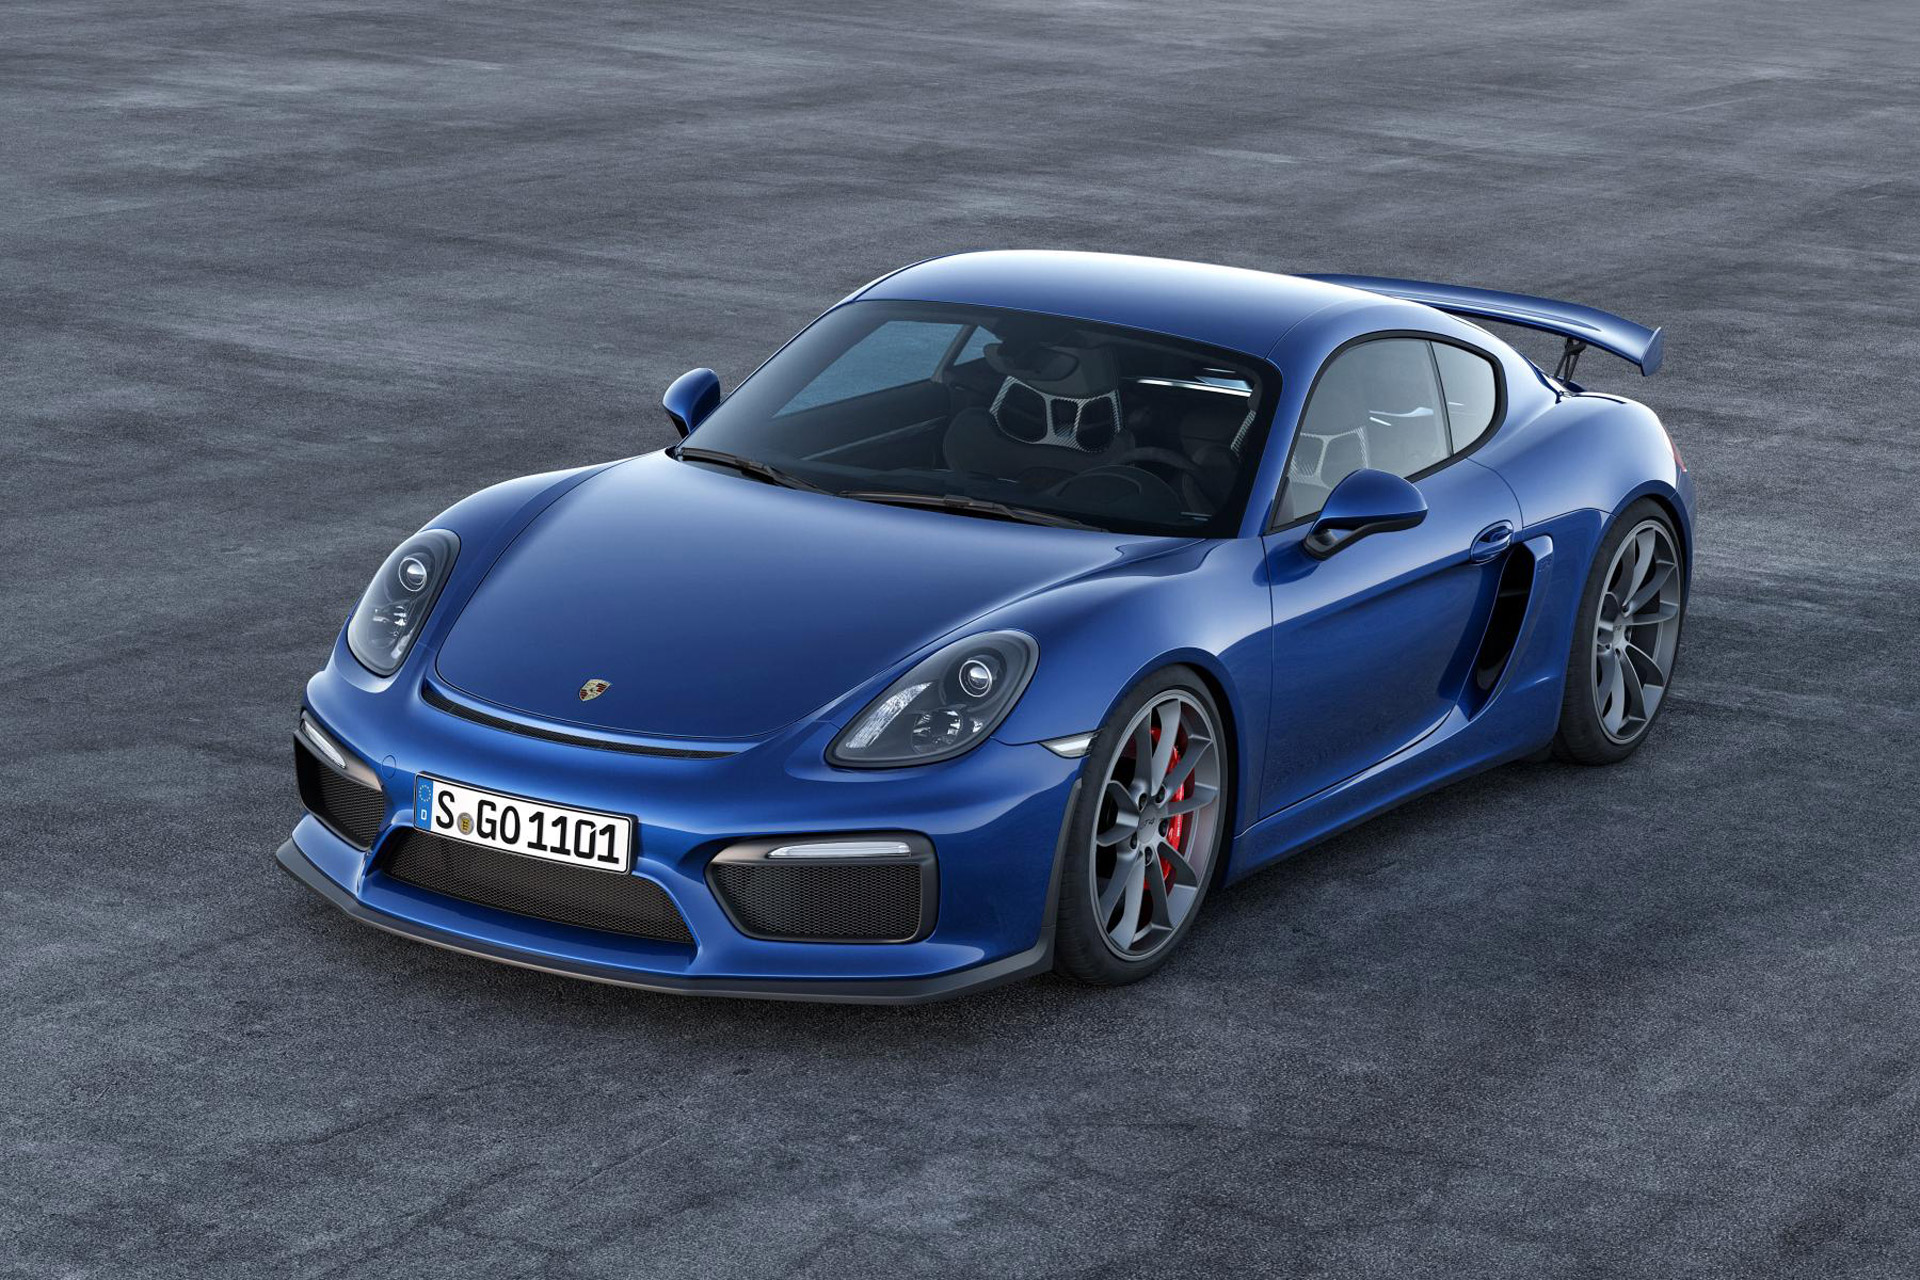 New And Used Porsche Cayman: Prices, Photos, Reviews, Specs